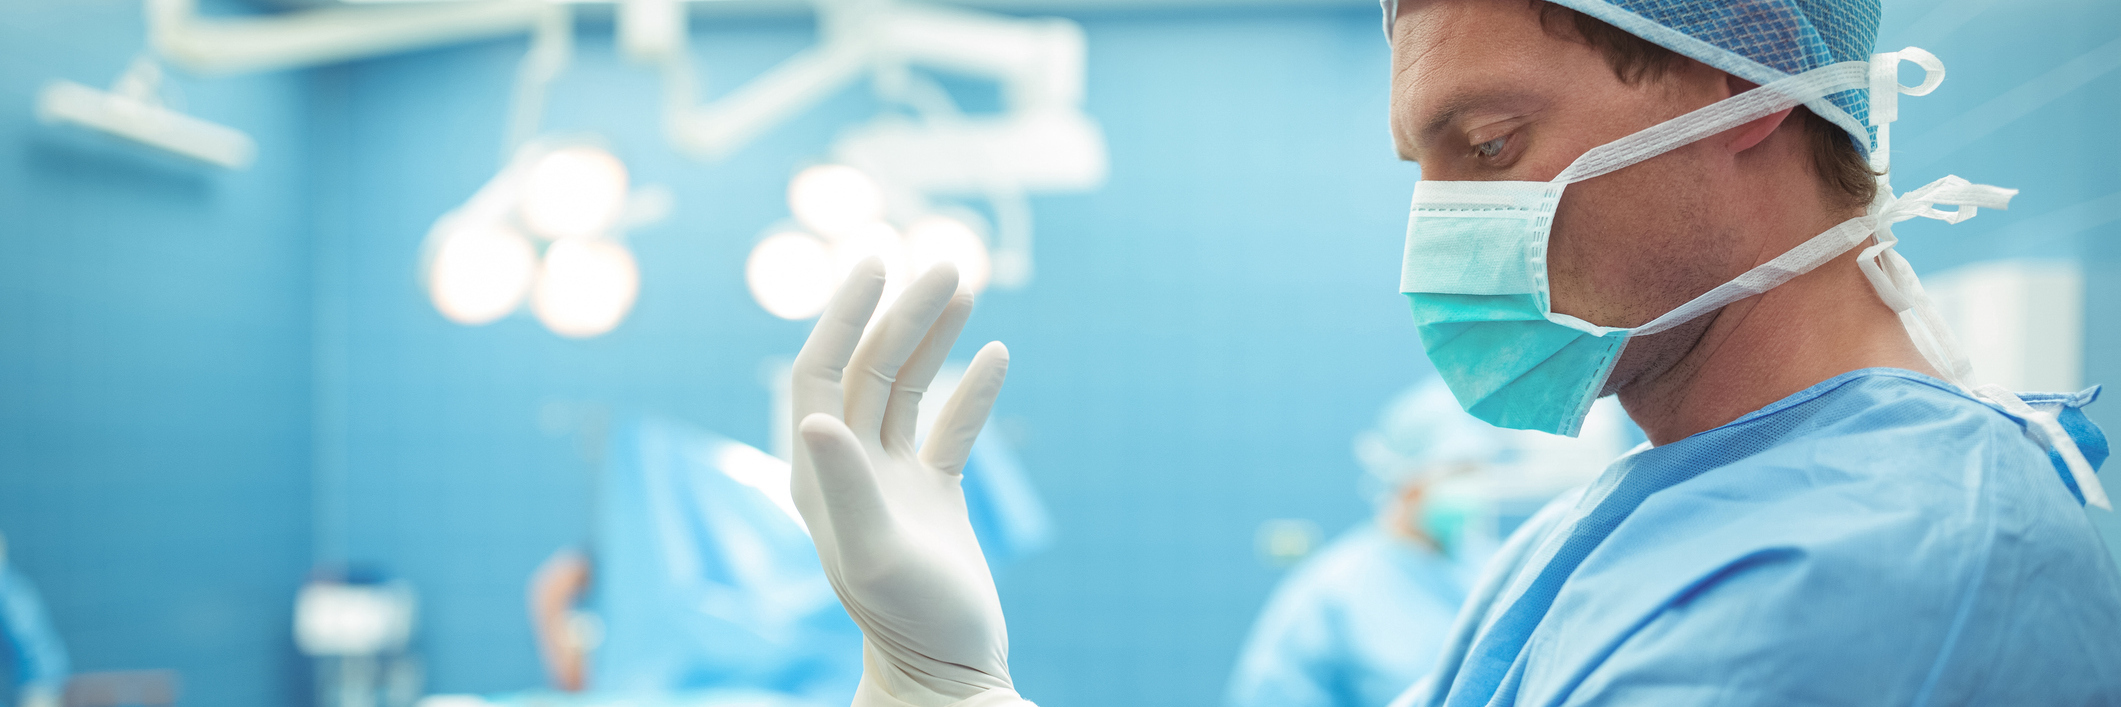 doctor putting on surgical gloves before a procedure